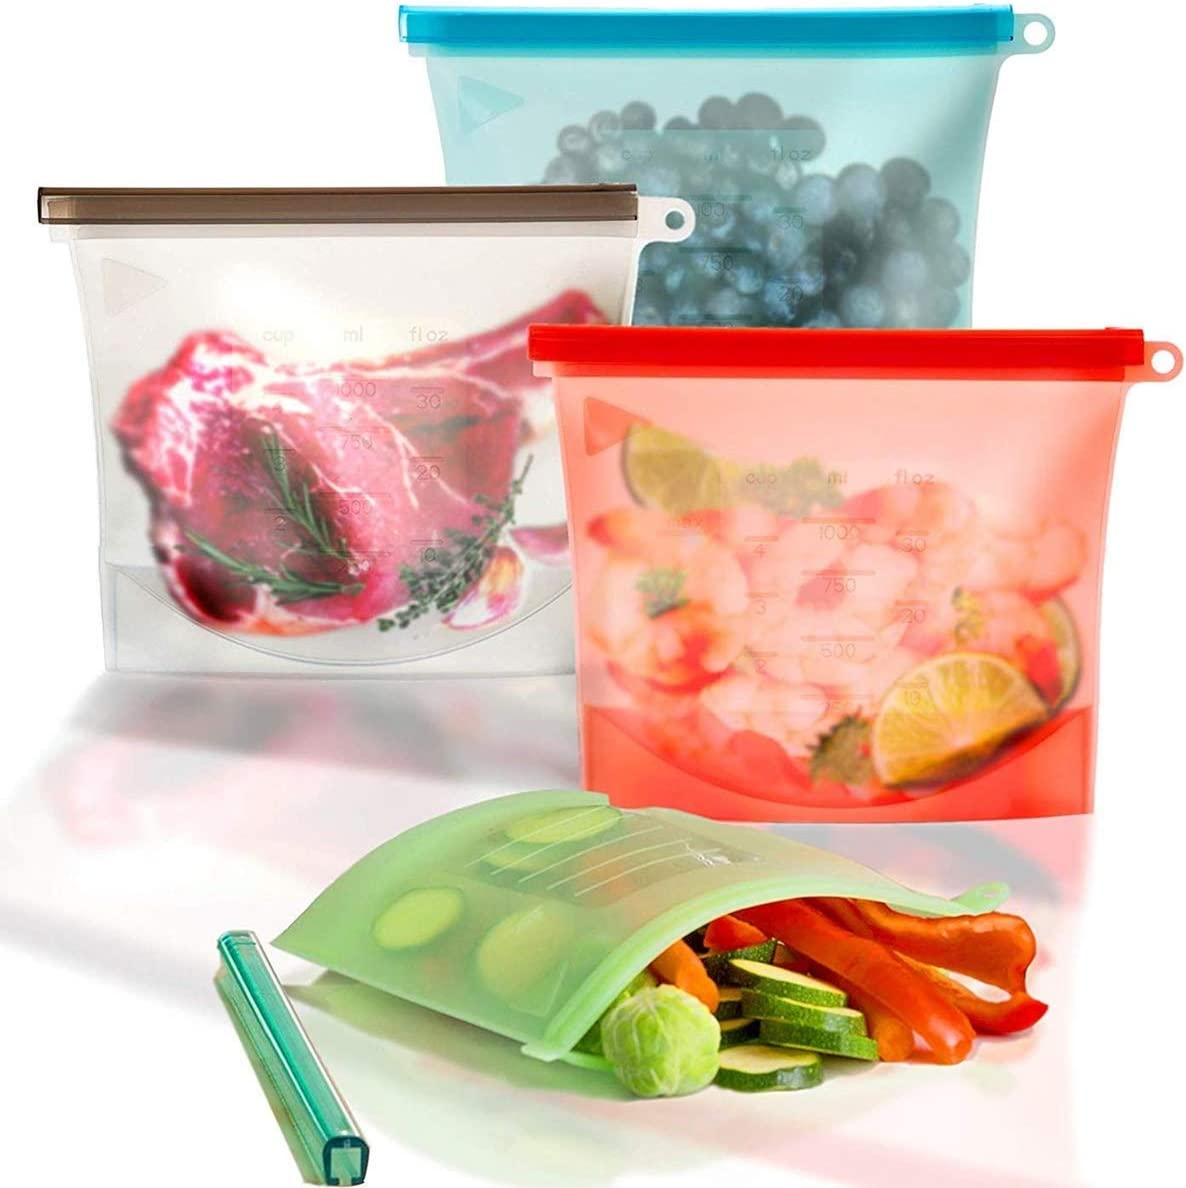 WeTest Silicone Reusable Food Bag for Sandwich,Fruit,Meat,Juice,Lunch,Snack Storage,Food Grade,Microwave Dishwasher Freezer Safe,Leakproof,1 Litre,4-Pack(Pink,Green,Blue,White) (Silicone Food Bag)